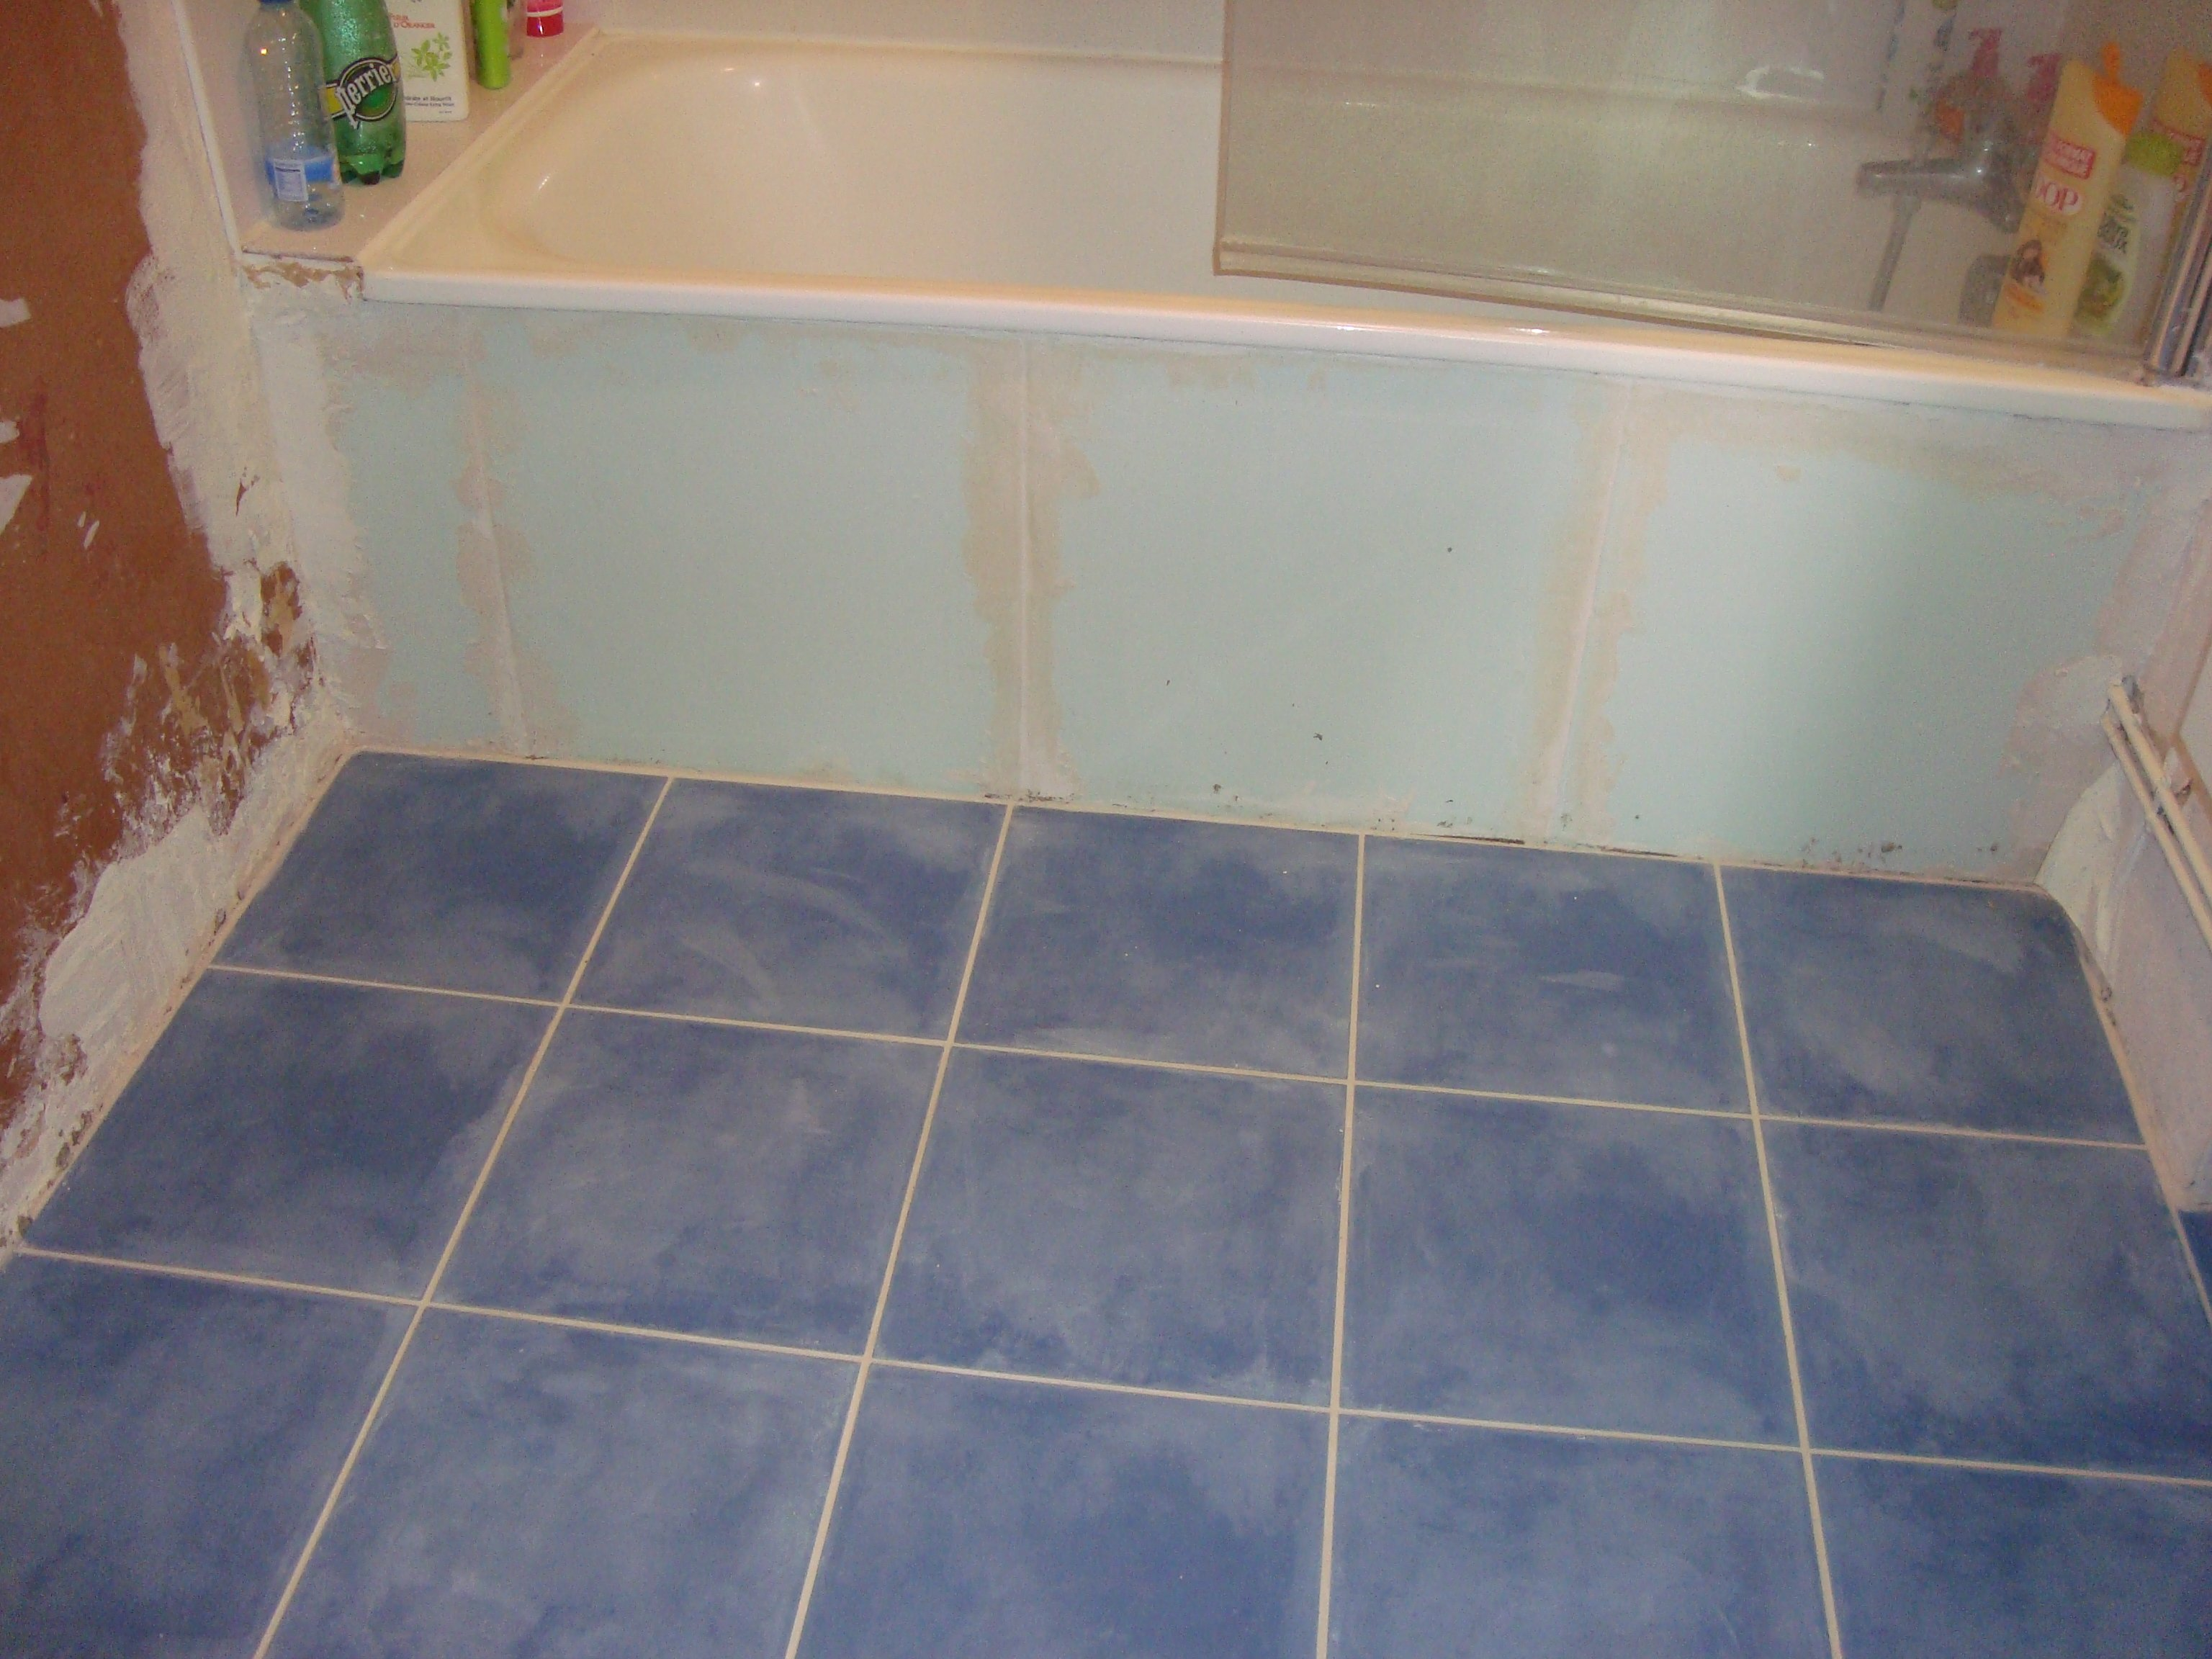 R novation d un appartement la salle de bain for Peindre les joints de carrelage au sol